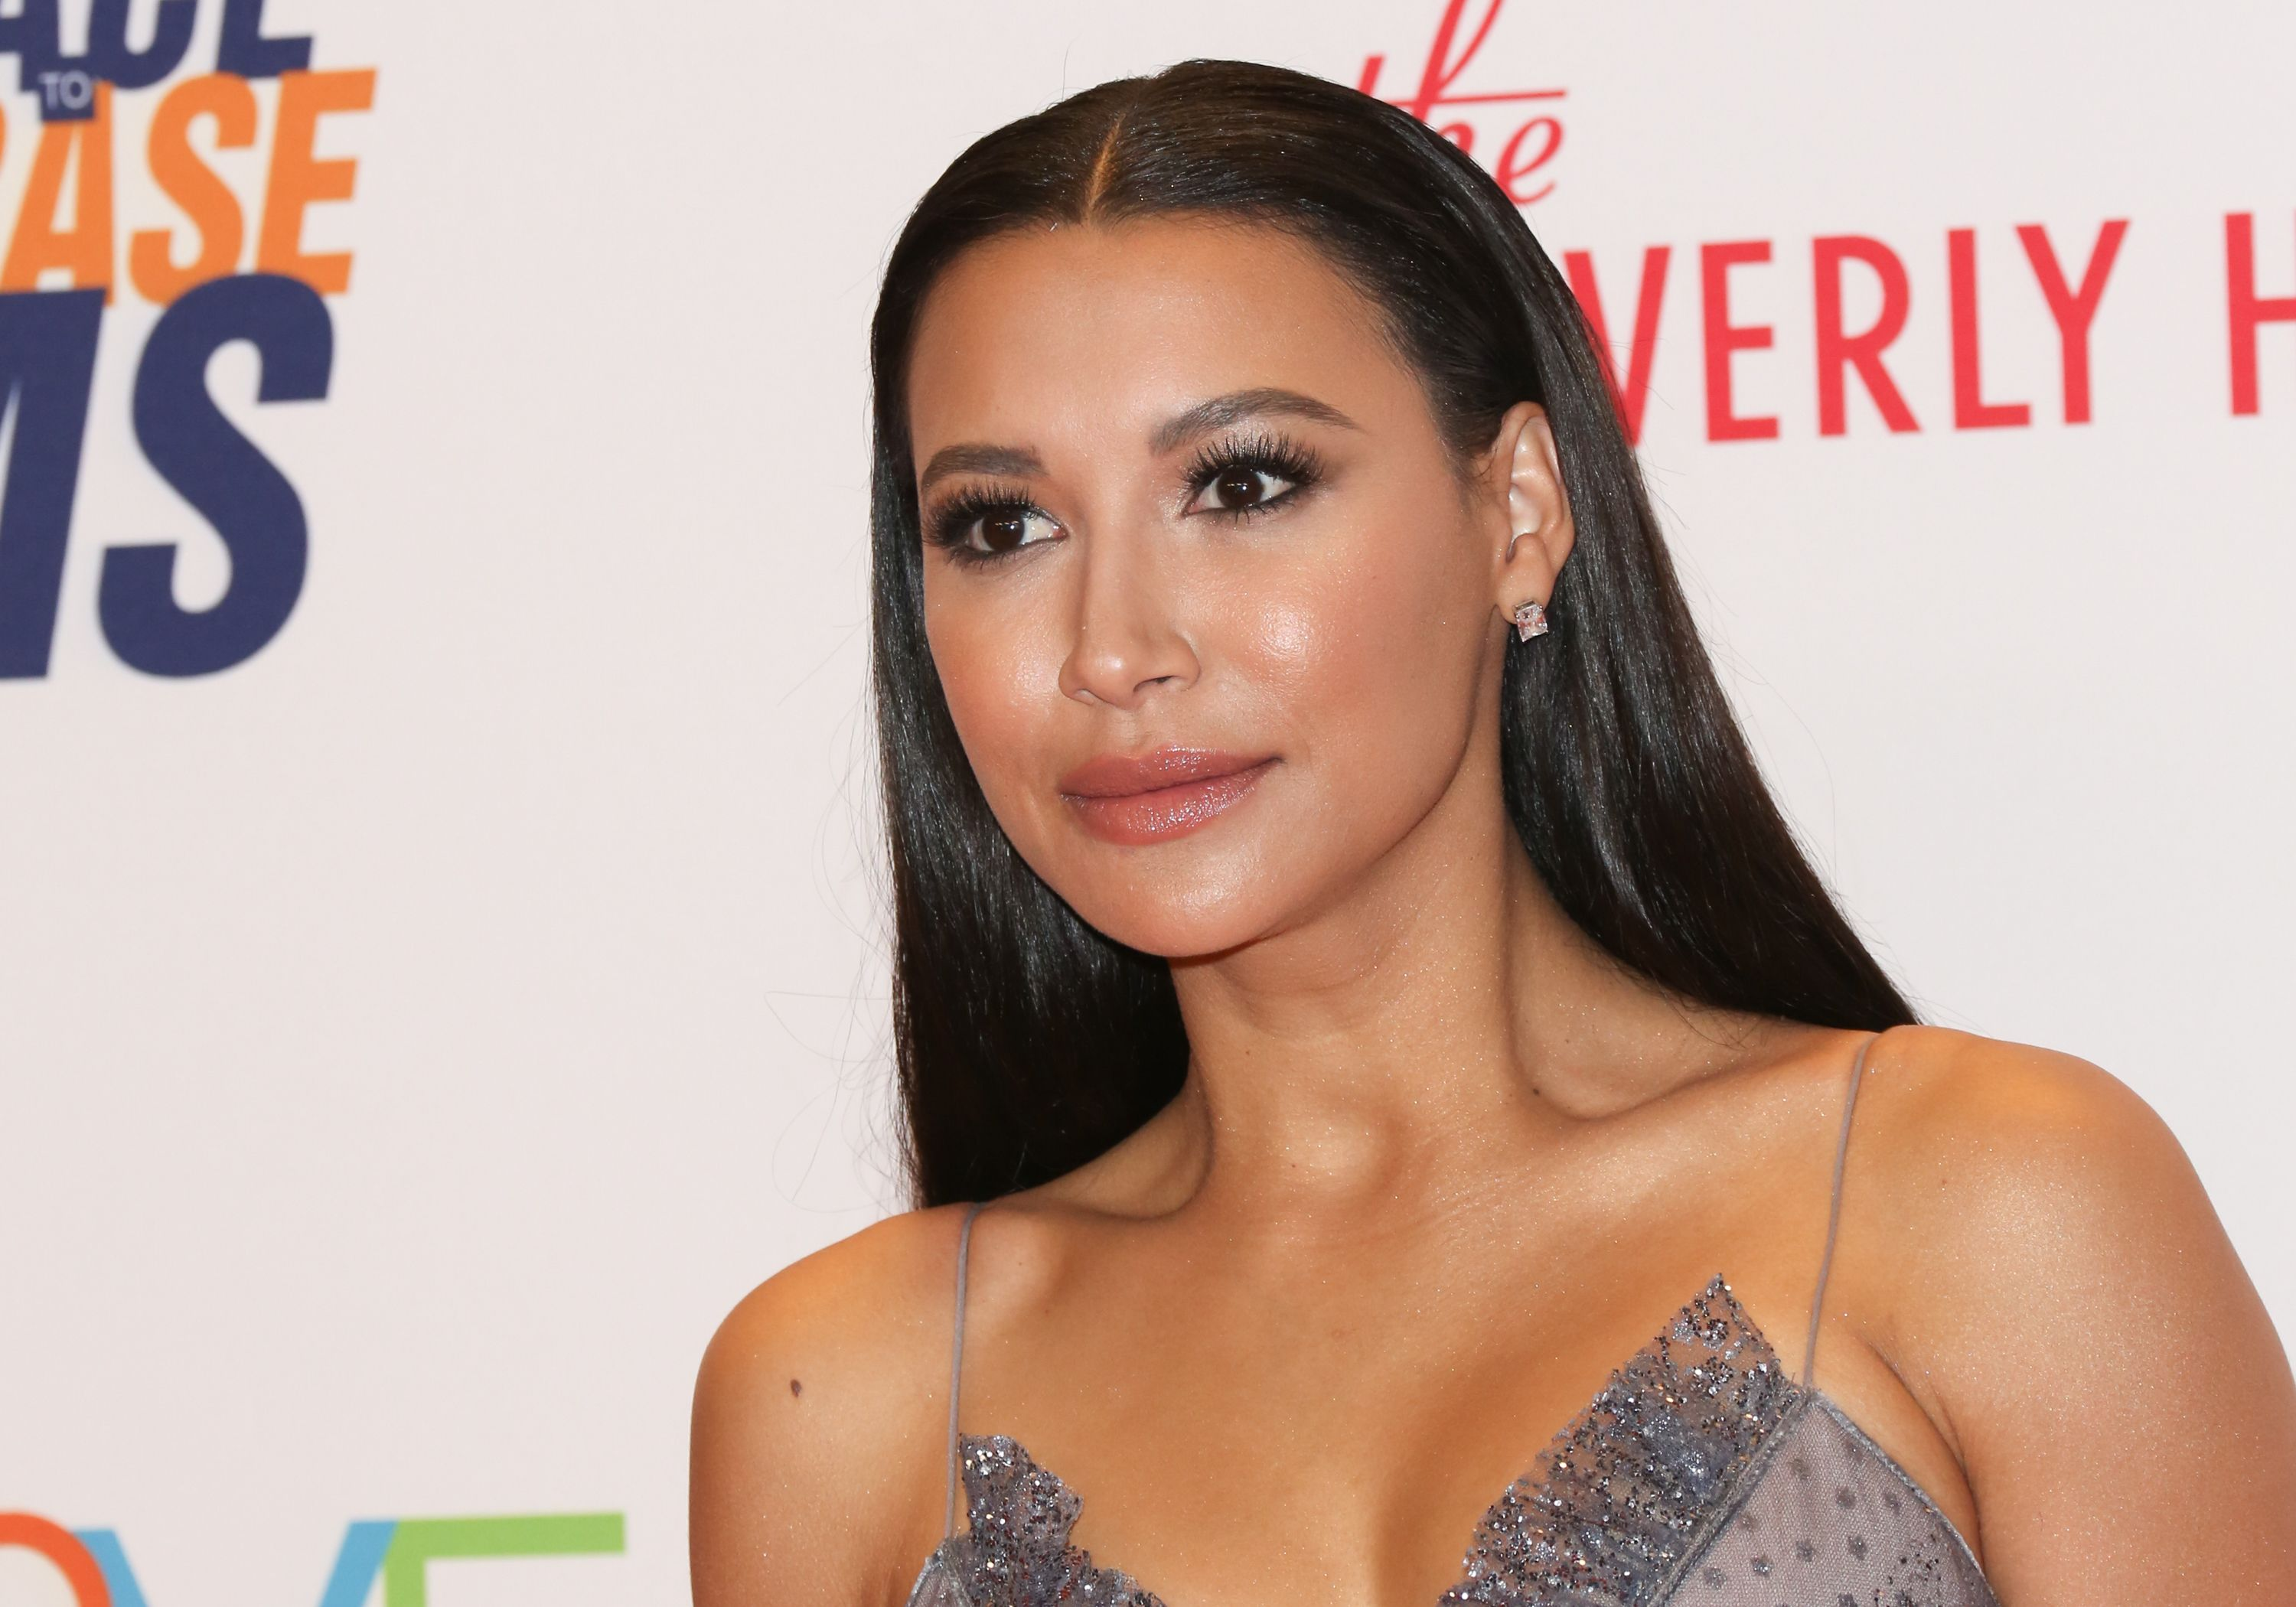 Naya Rivera at the 24th Annual Race To Erase MS Gala in, 2017 in Beverly Hills, California | Source: Getty Images